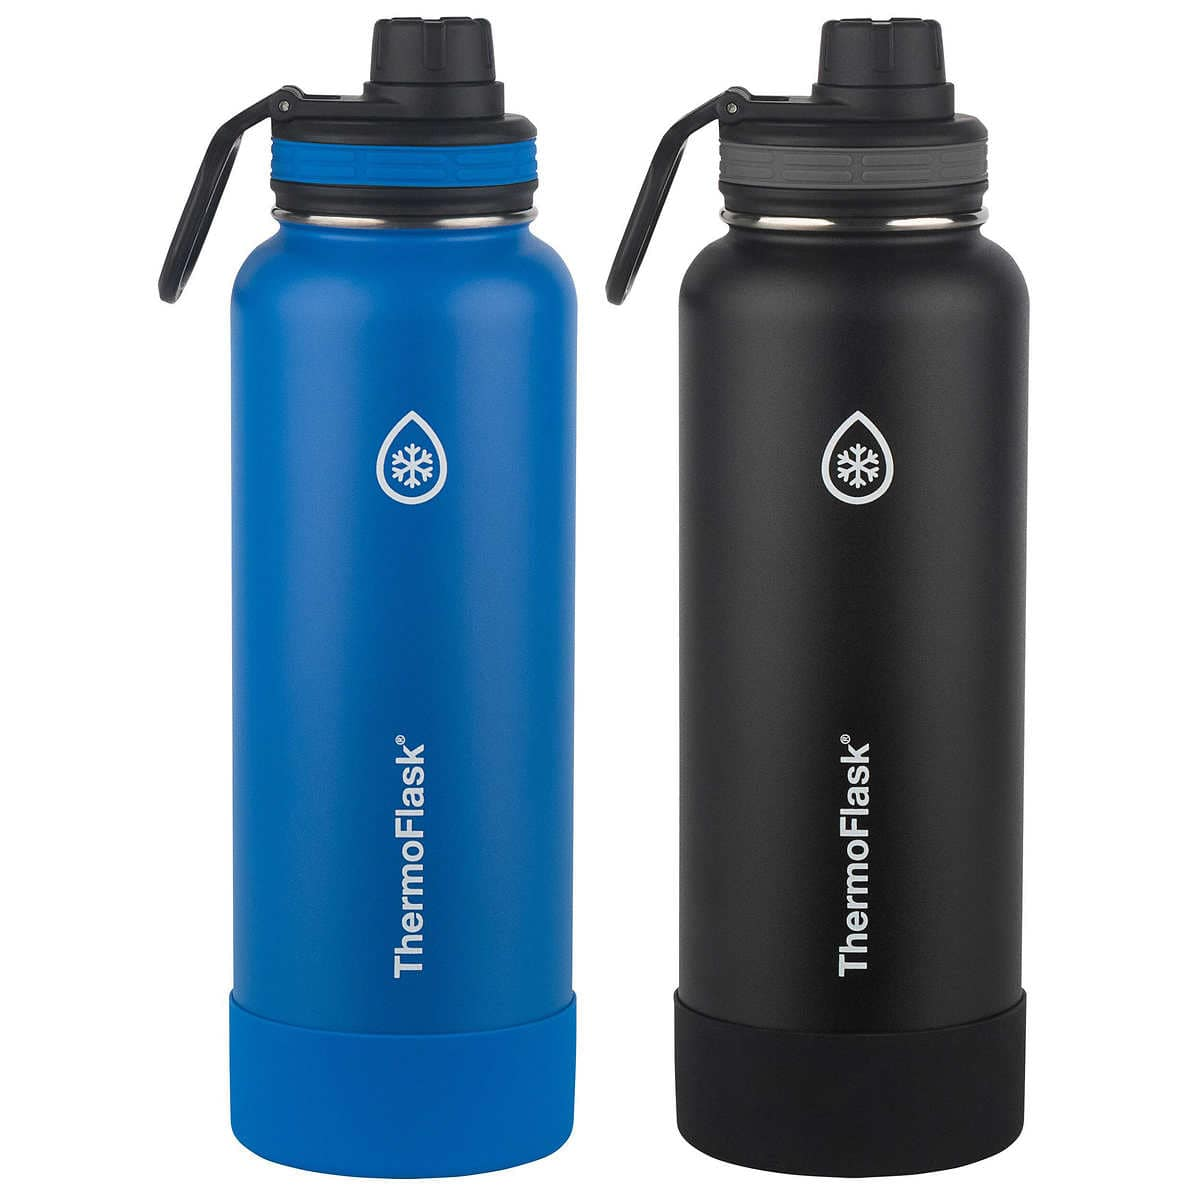 Thermoflask 40oz insulated water bottle (2 pack) $17.99 @ Costco